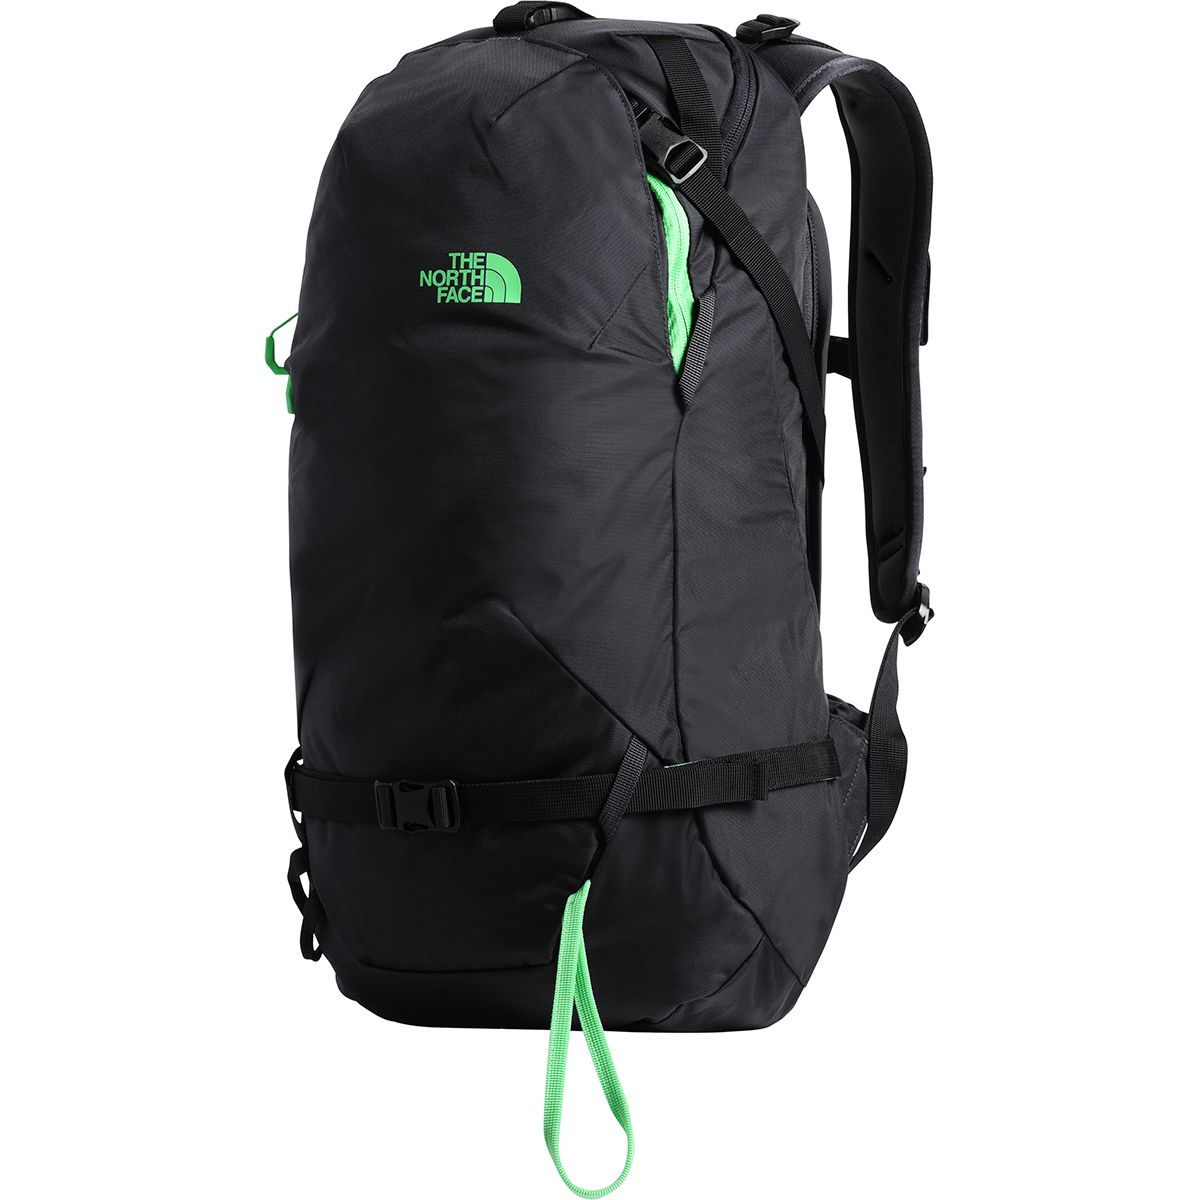 The North Face Snomad 23